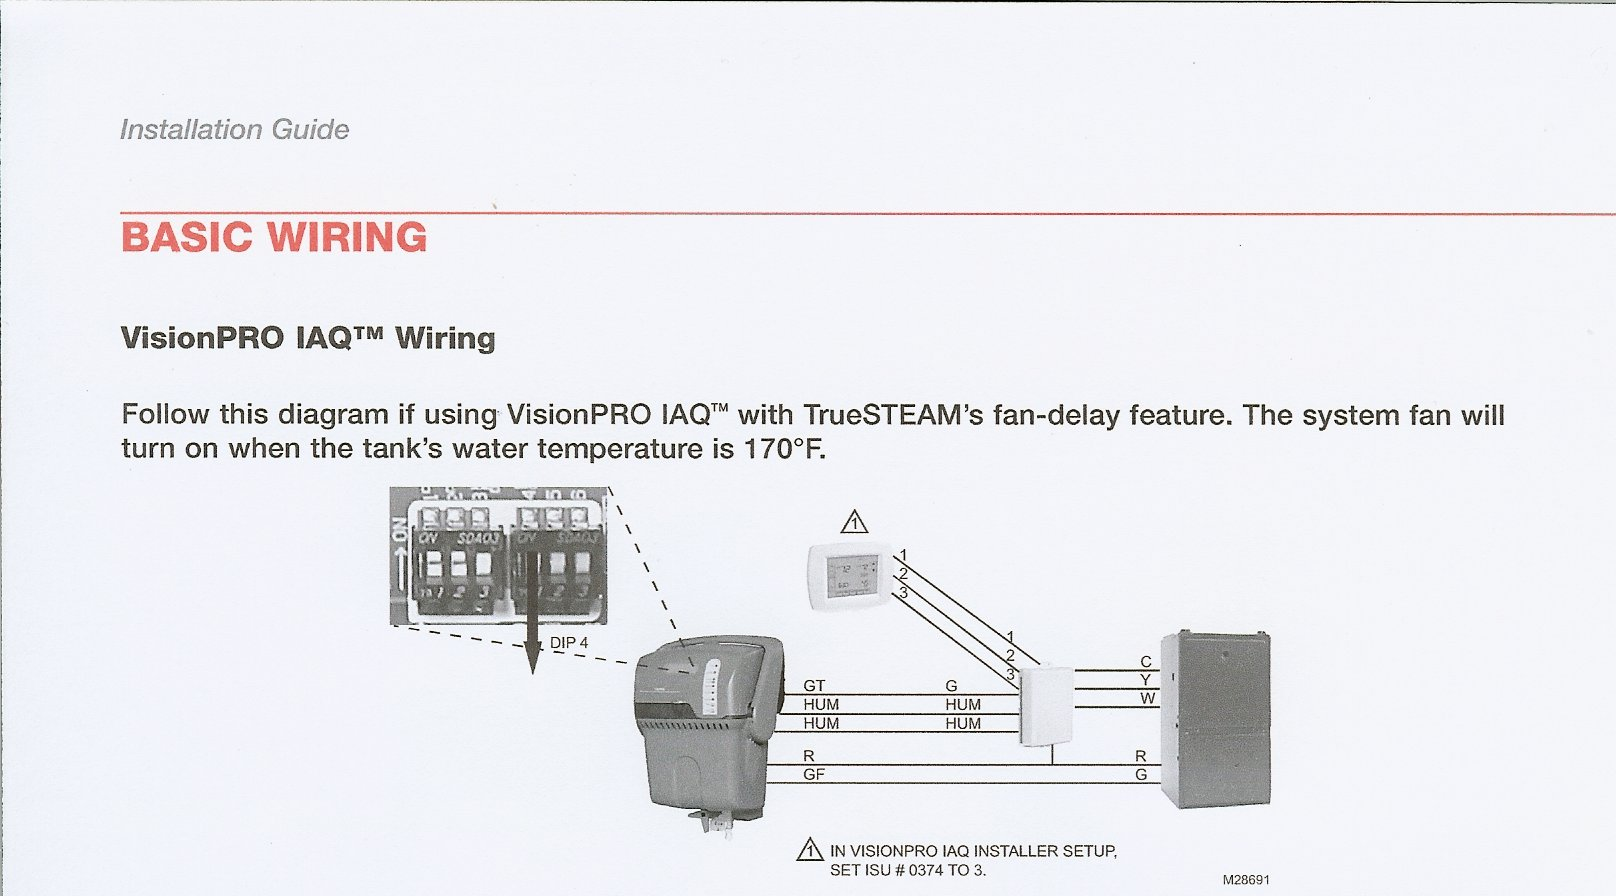 Trane Xr90 Wiring Diagram Schematics Xv95 I Just Installed A Honeywell Hm509 Humidifier To My